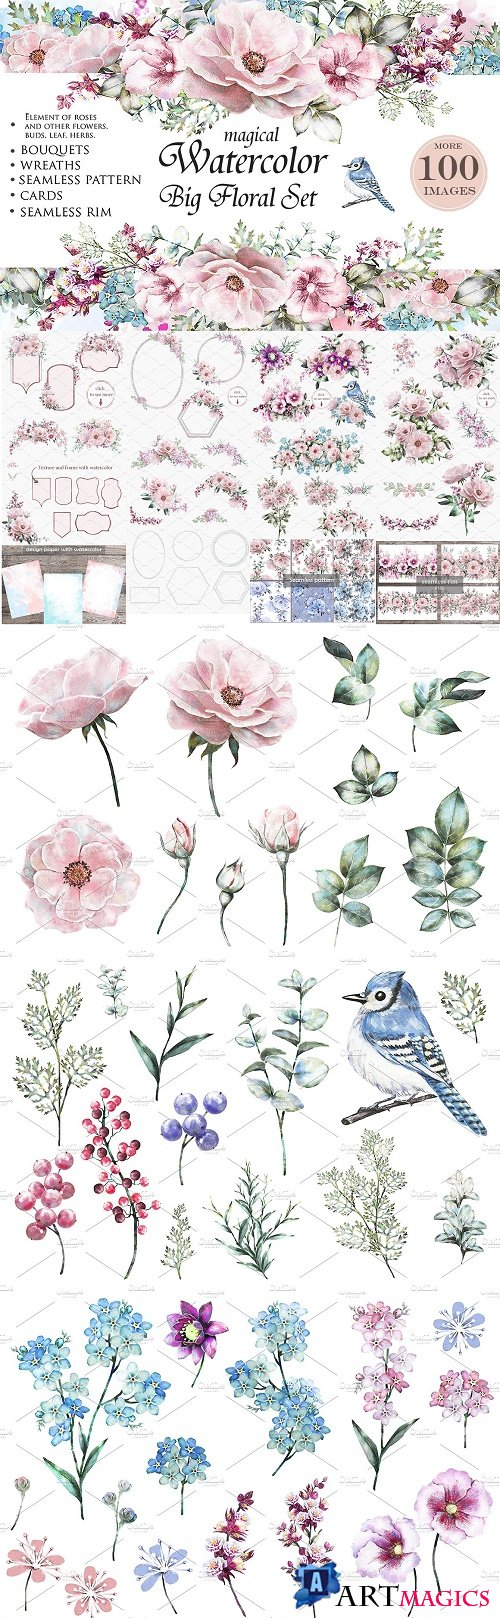 Watercolor Floral Design Set. Flower - 1207012